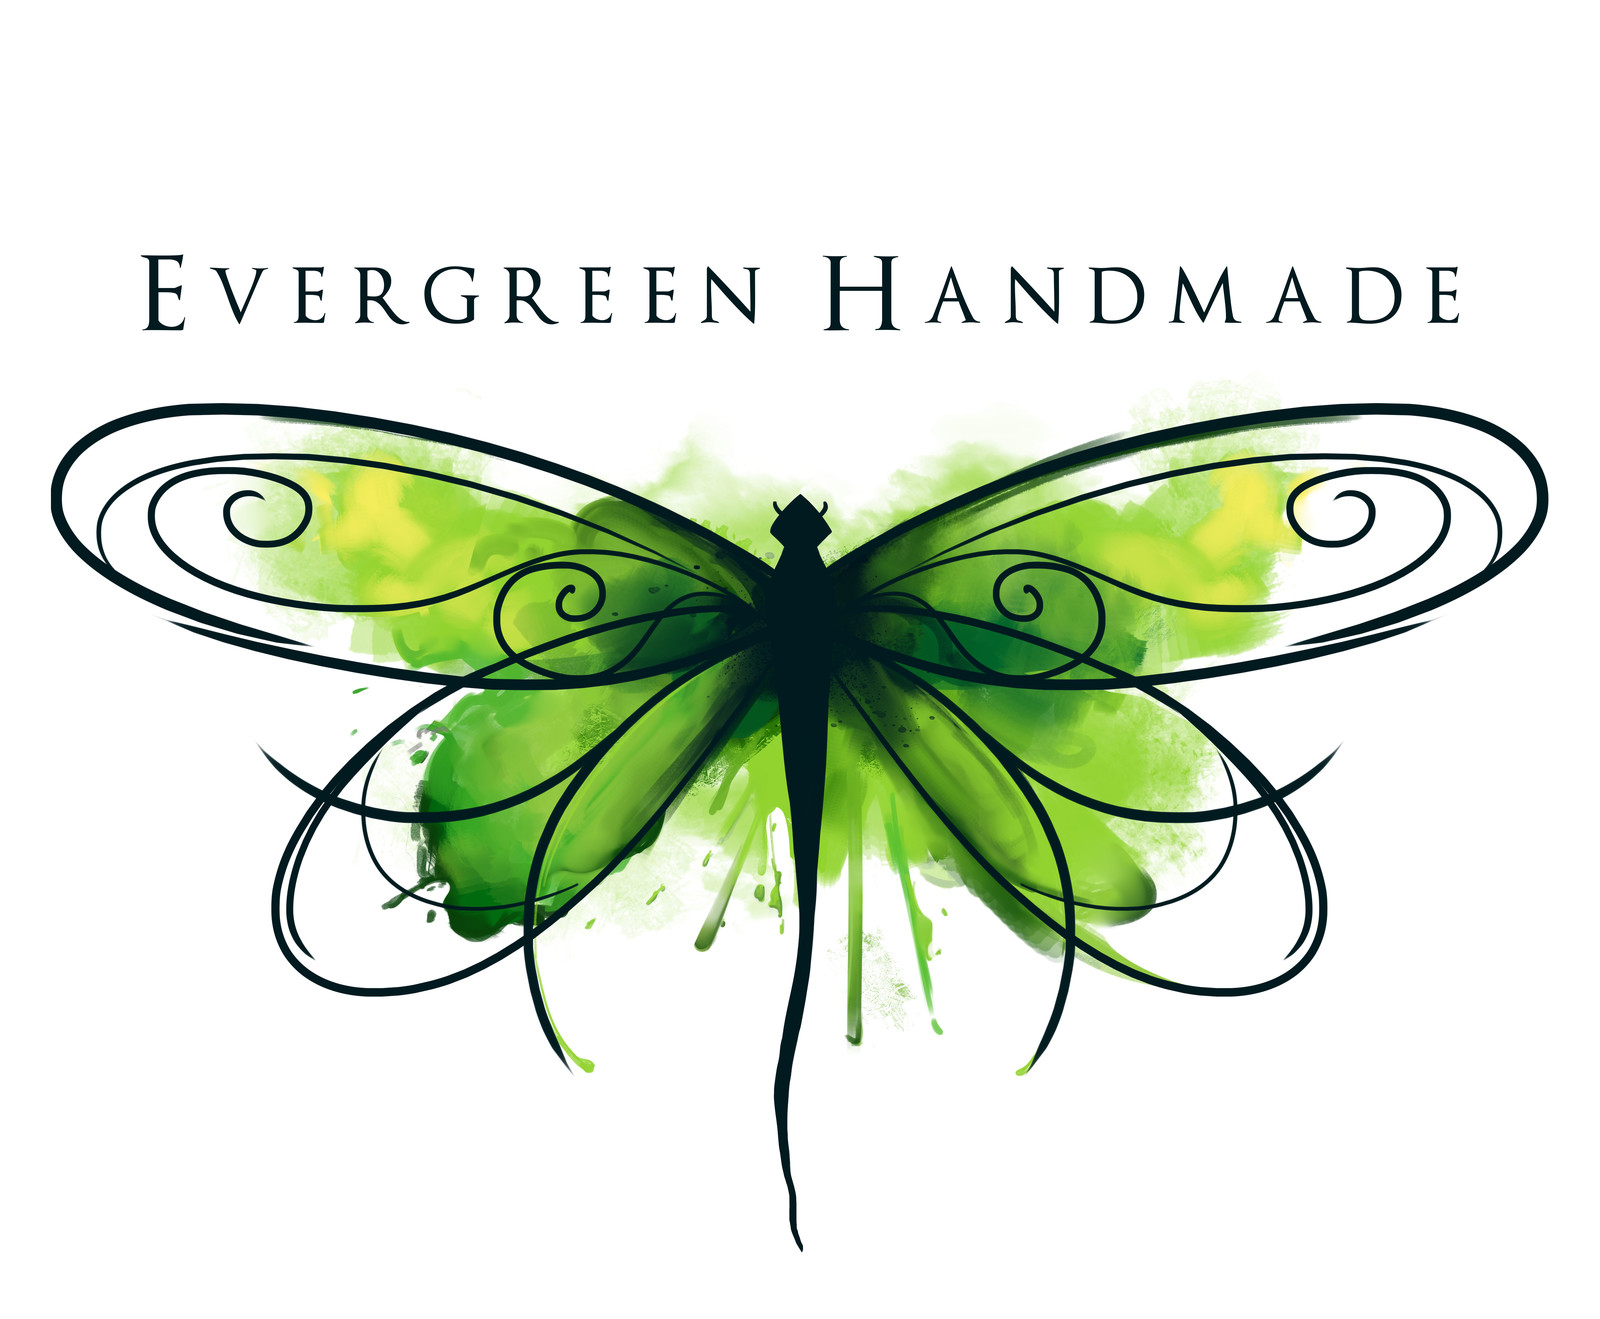 Evergreen Handmade